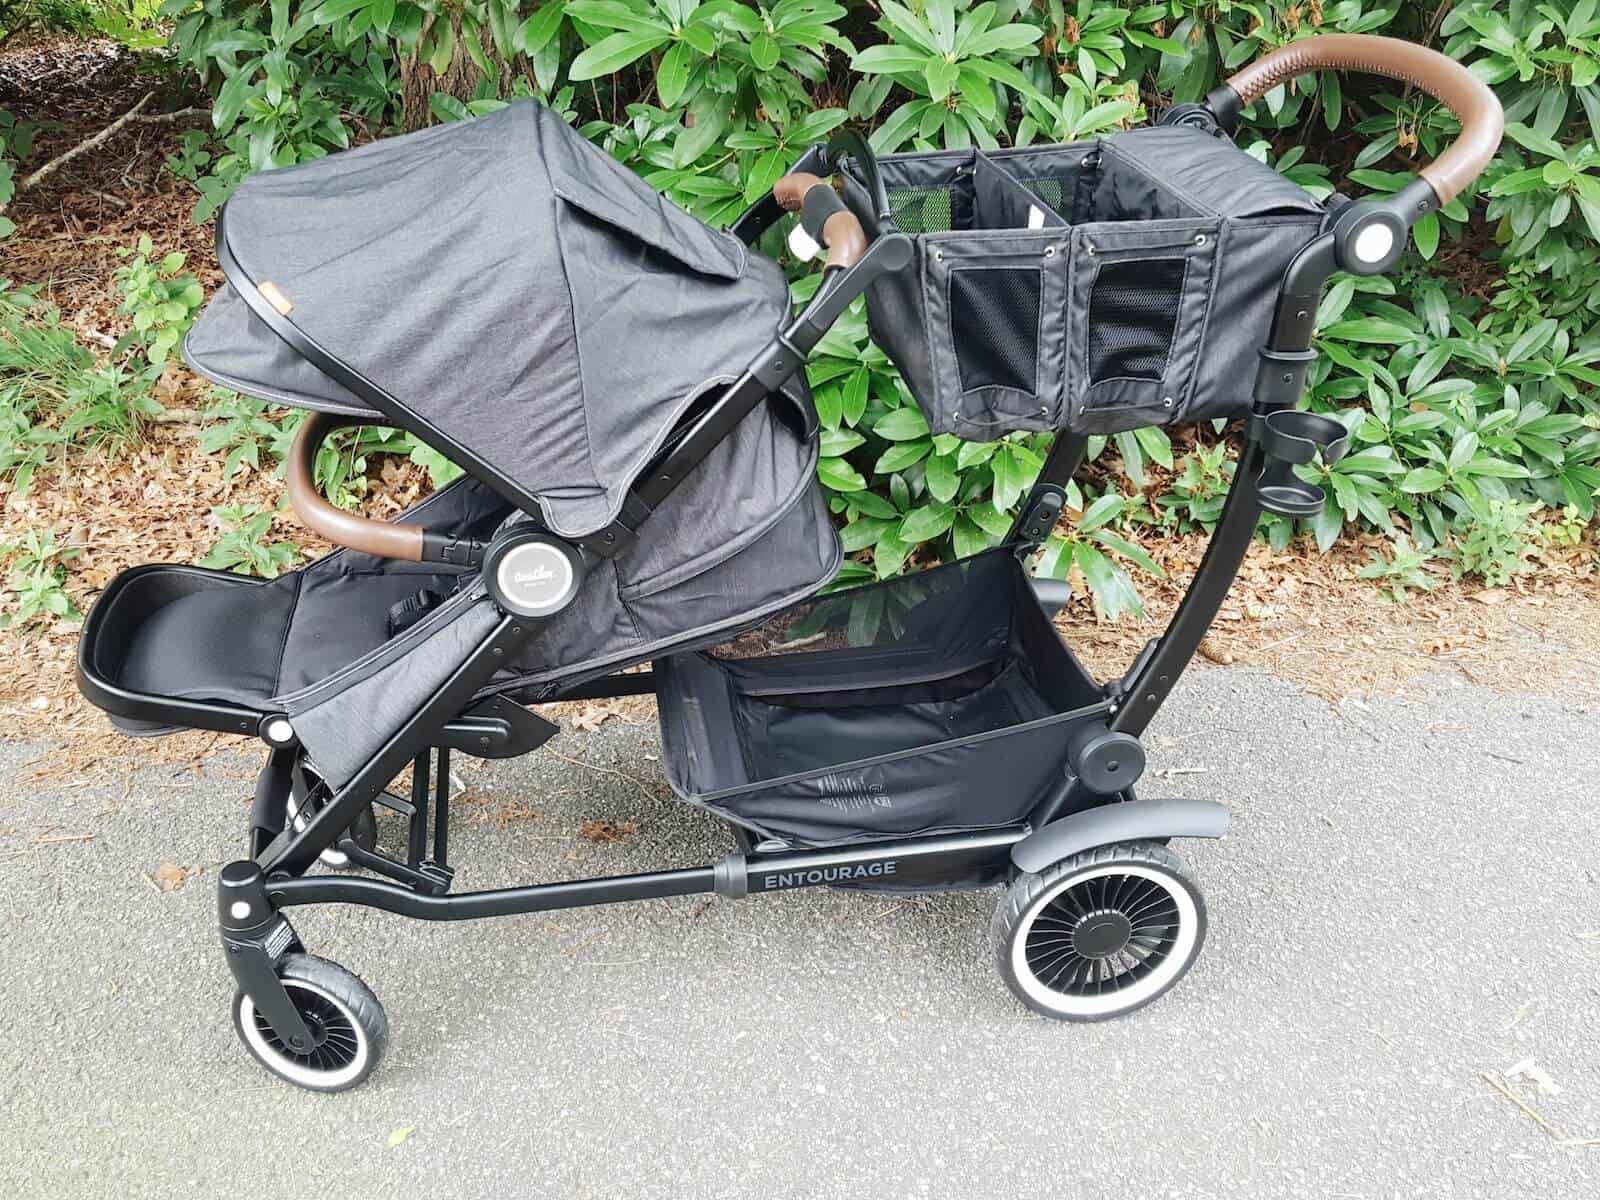 Austlen Entourage Review: The Workhorse Stroller that Families will Love!